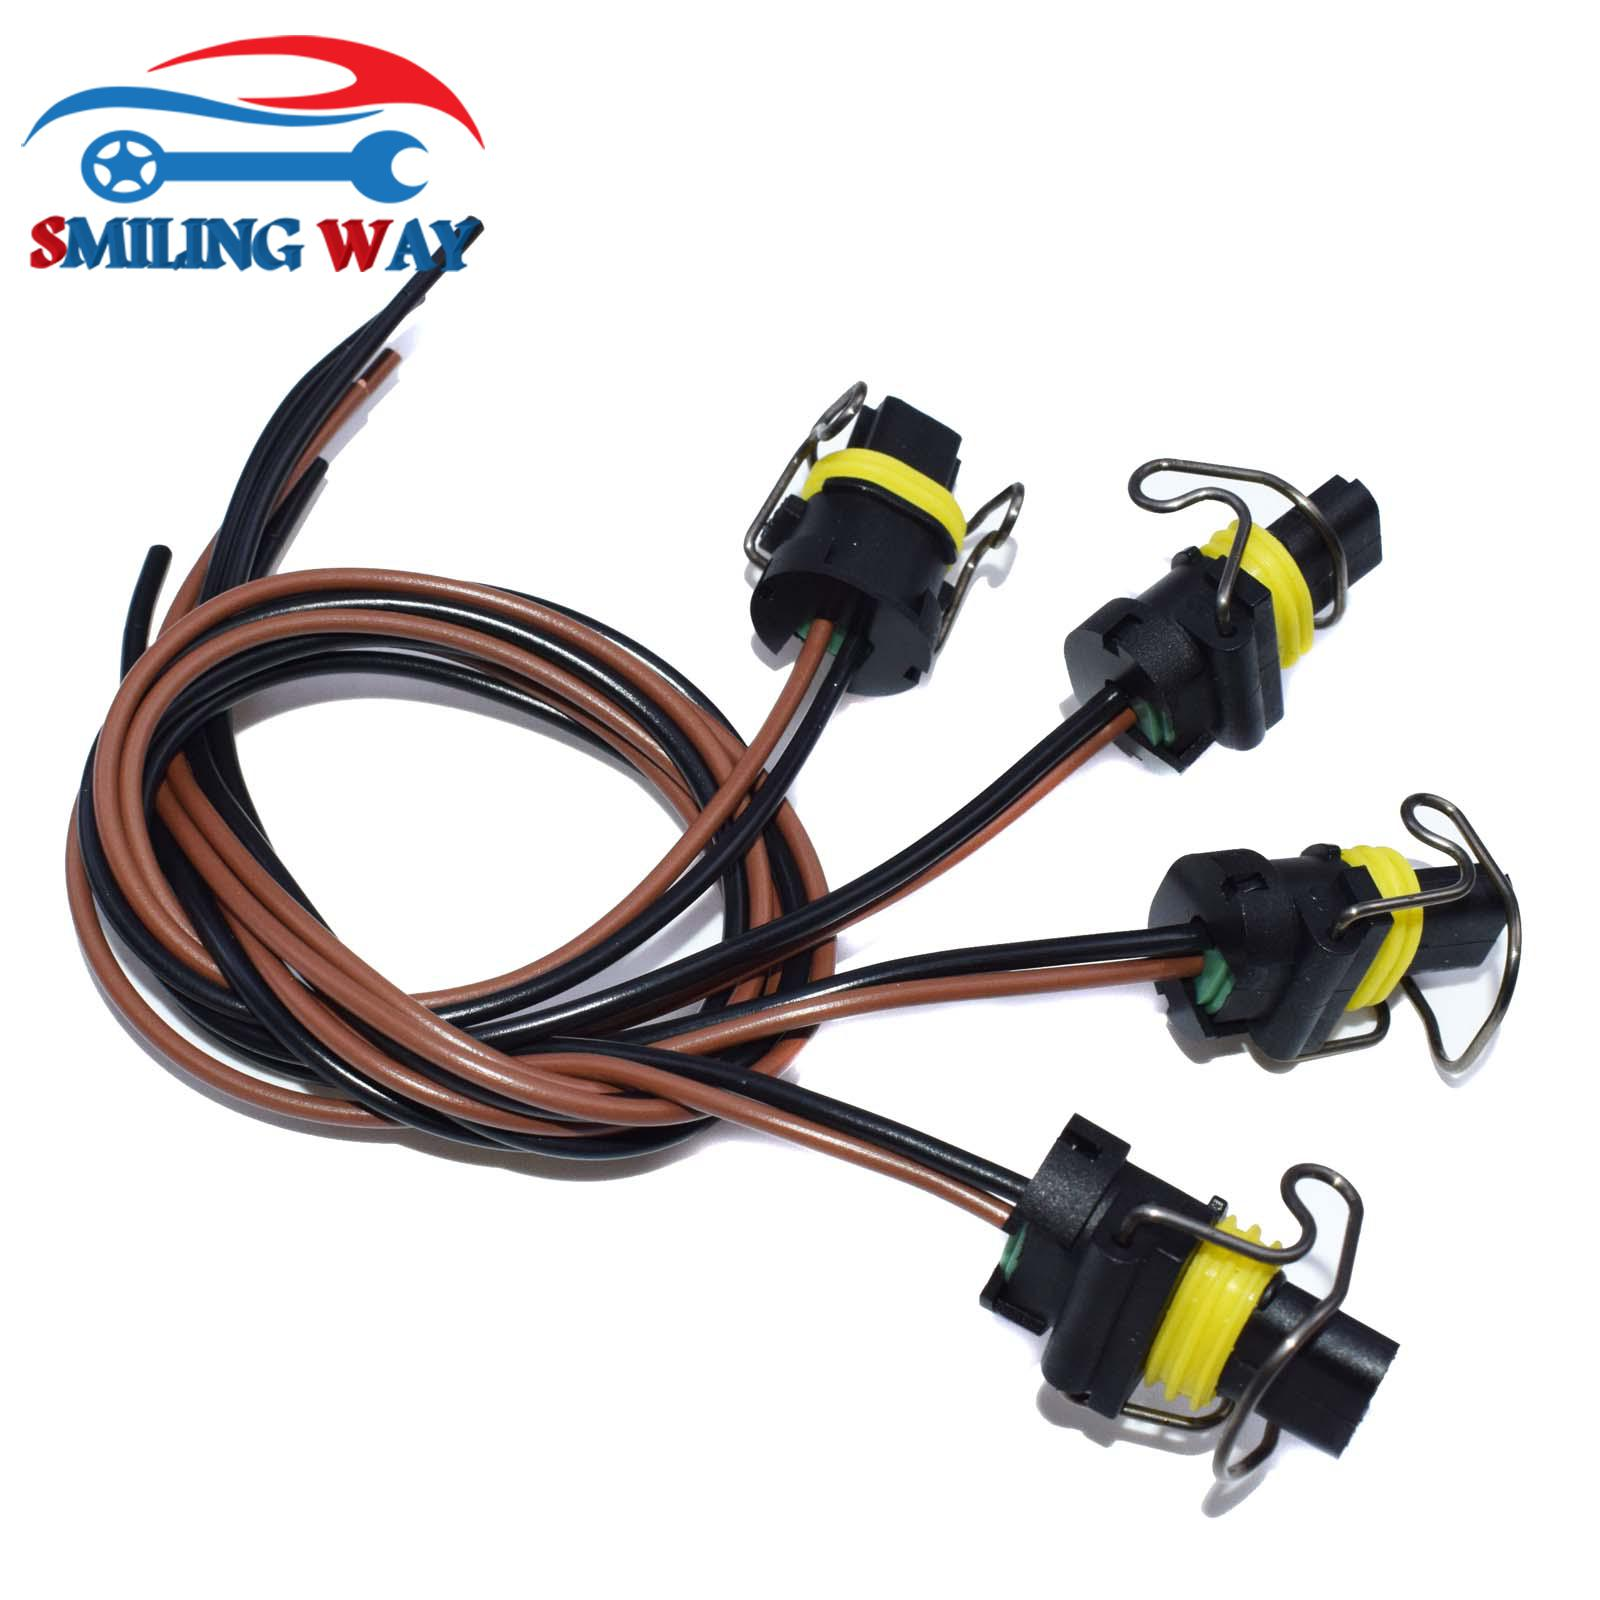 New Connector Pigtail Harness For Ford 6.0L 6.7L PowerStroke Diesel VGT solenoid